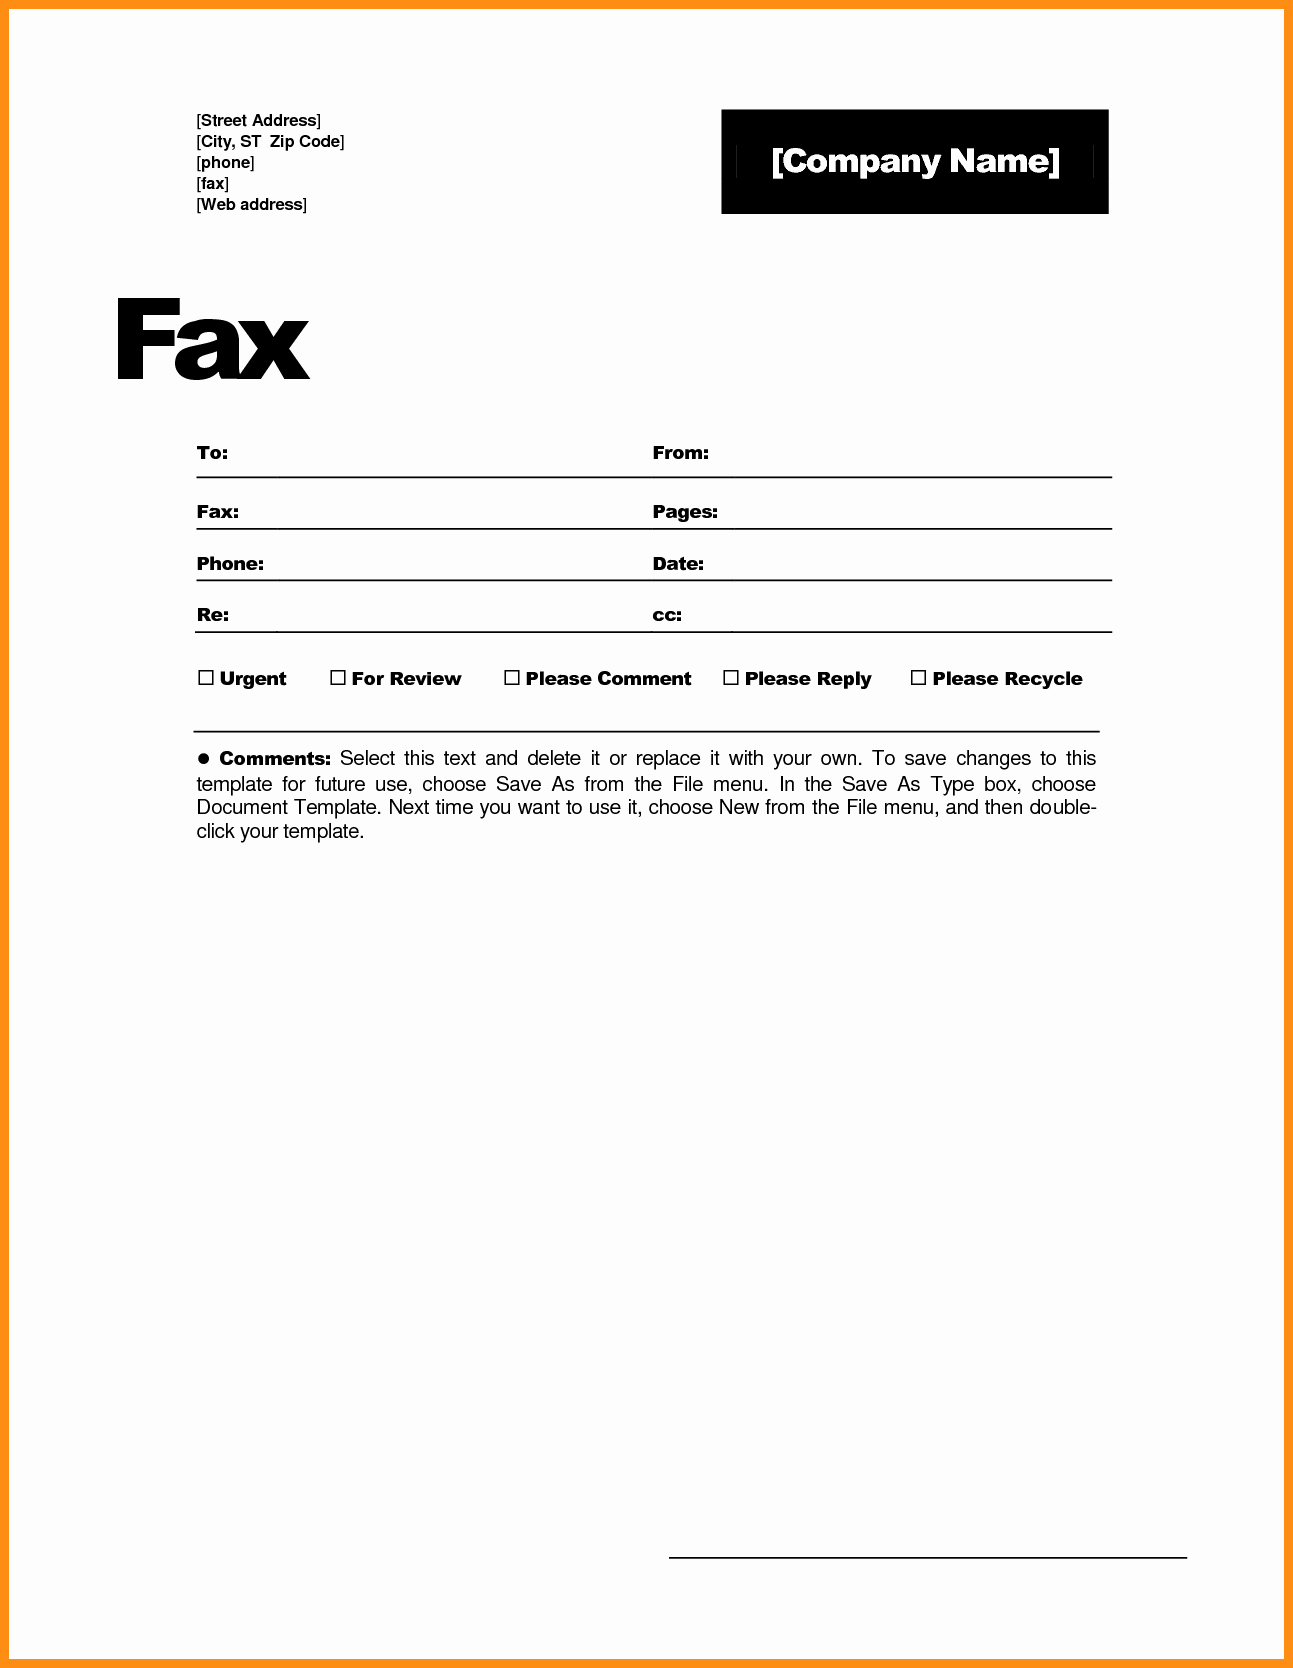 Free Downloads Fax Cover Sheet Elegant 6 Free Fax Cover Sheet Template Word